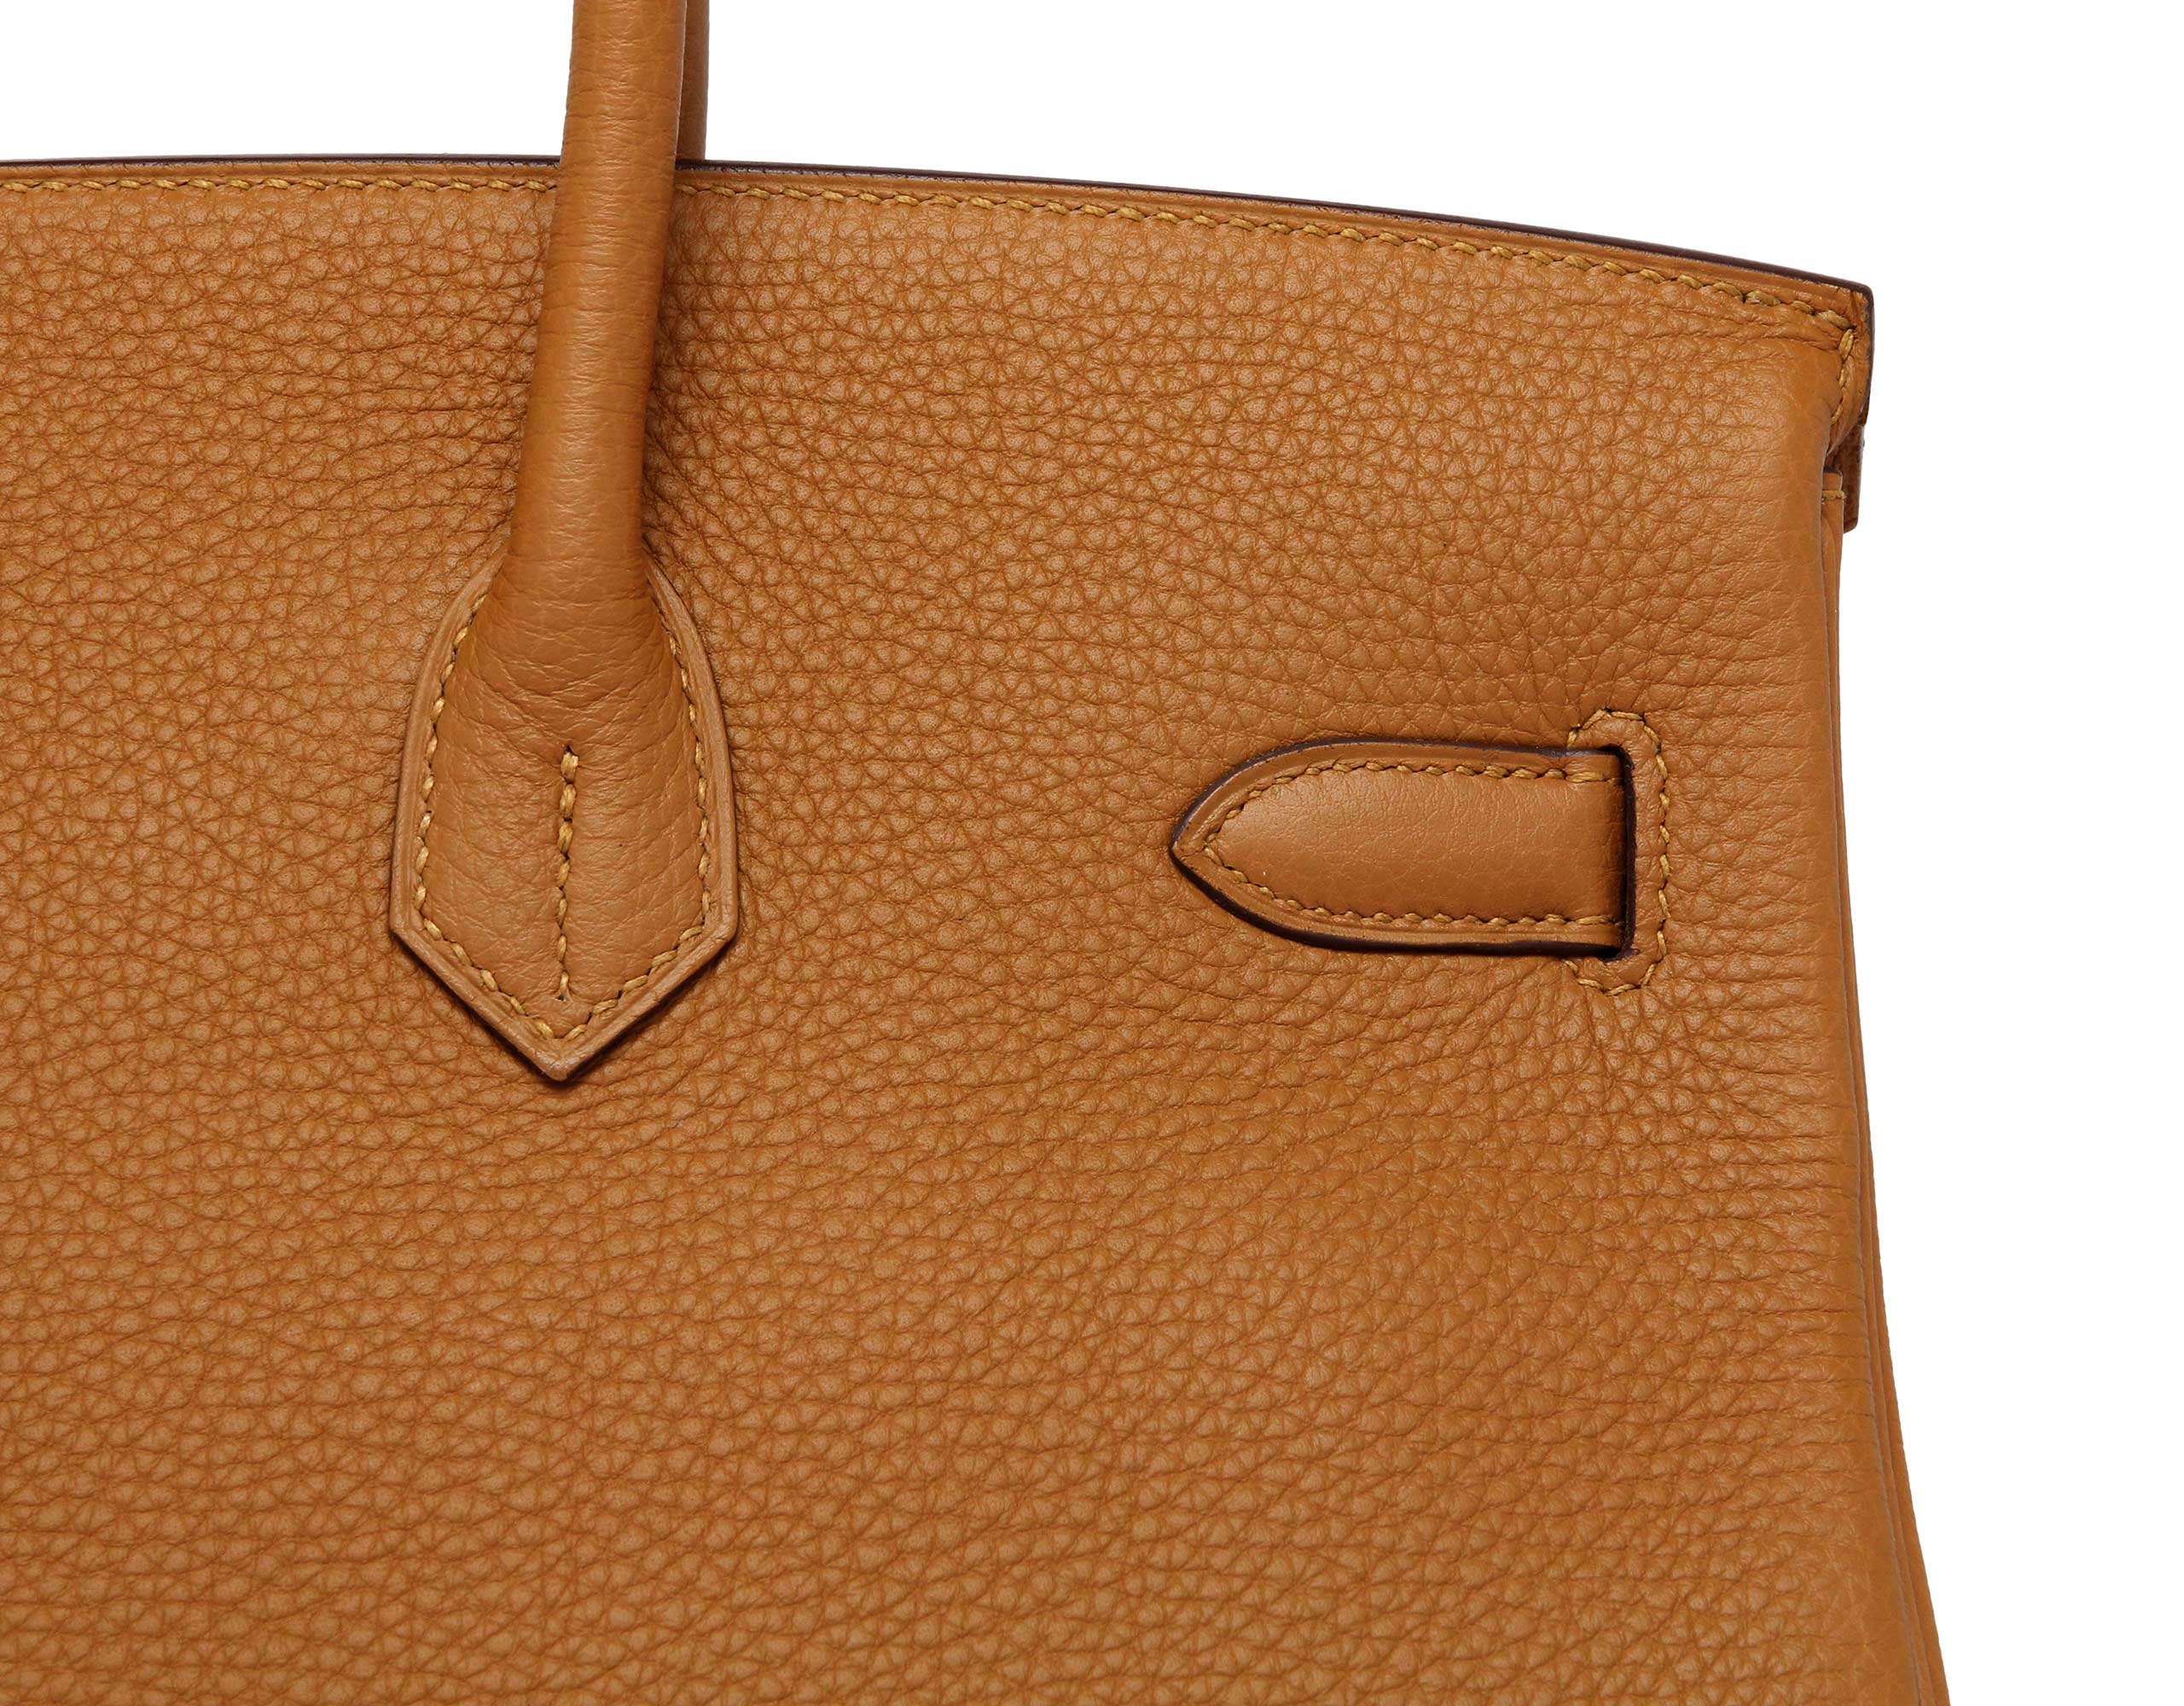 Hermes Birkin Caramel Togo with Gold